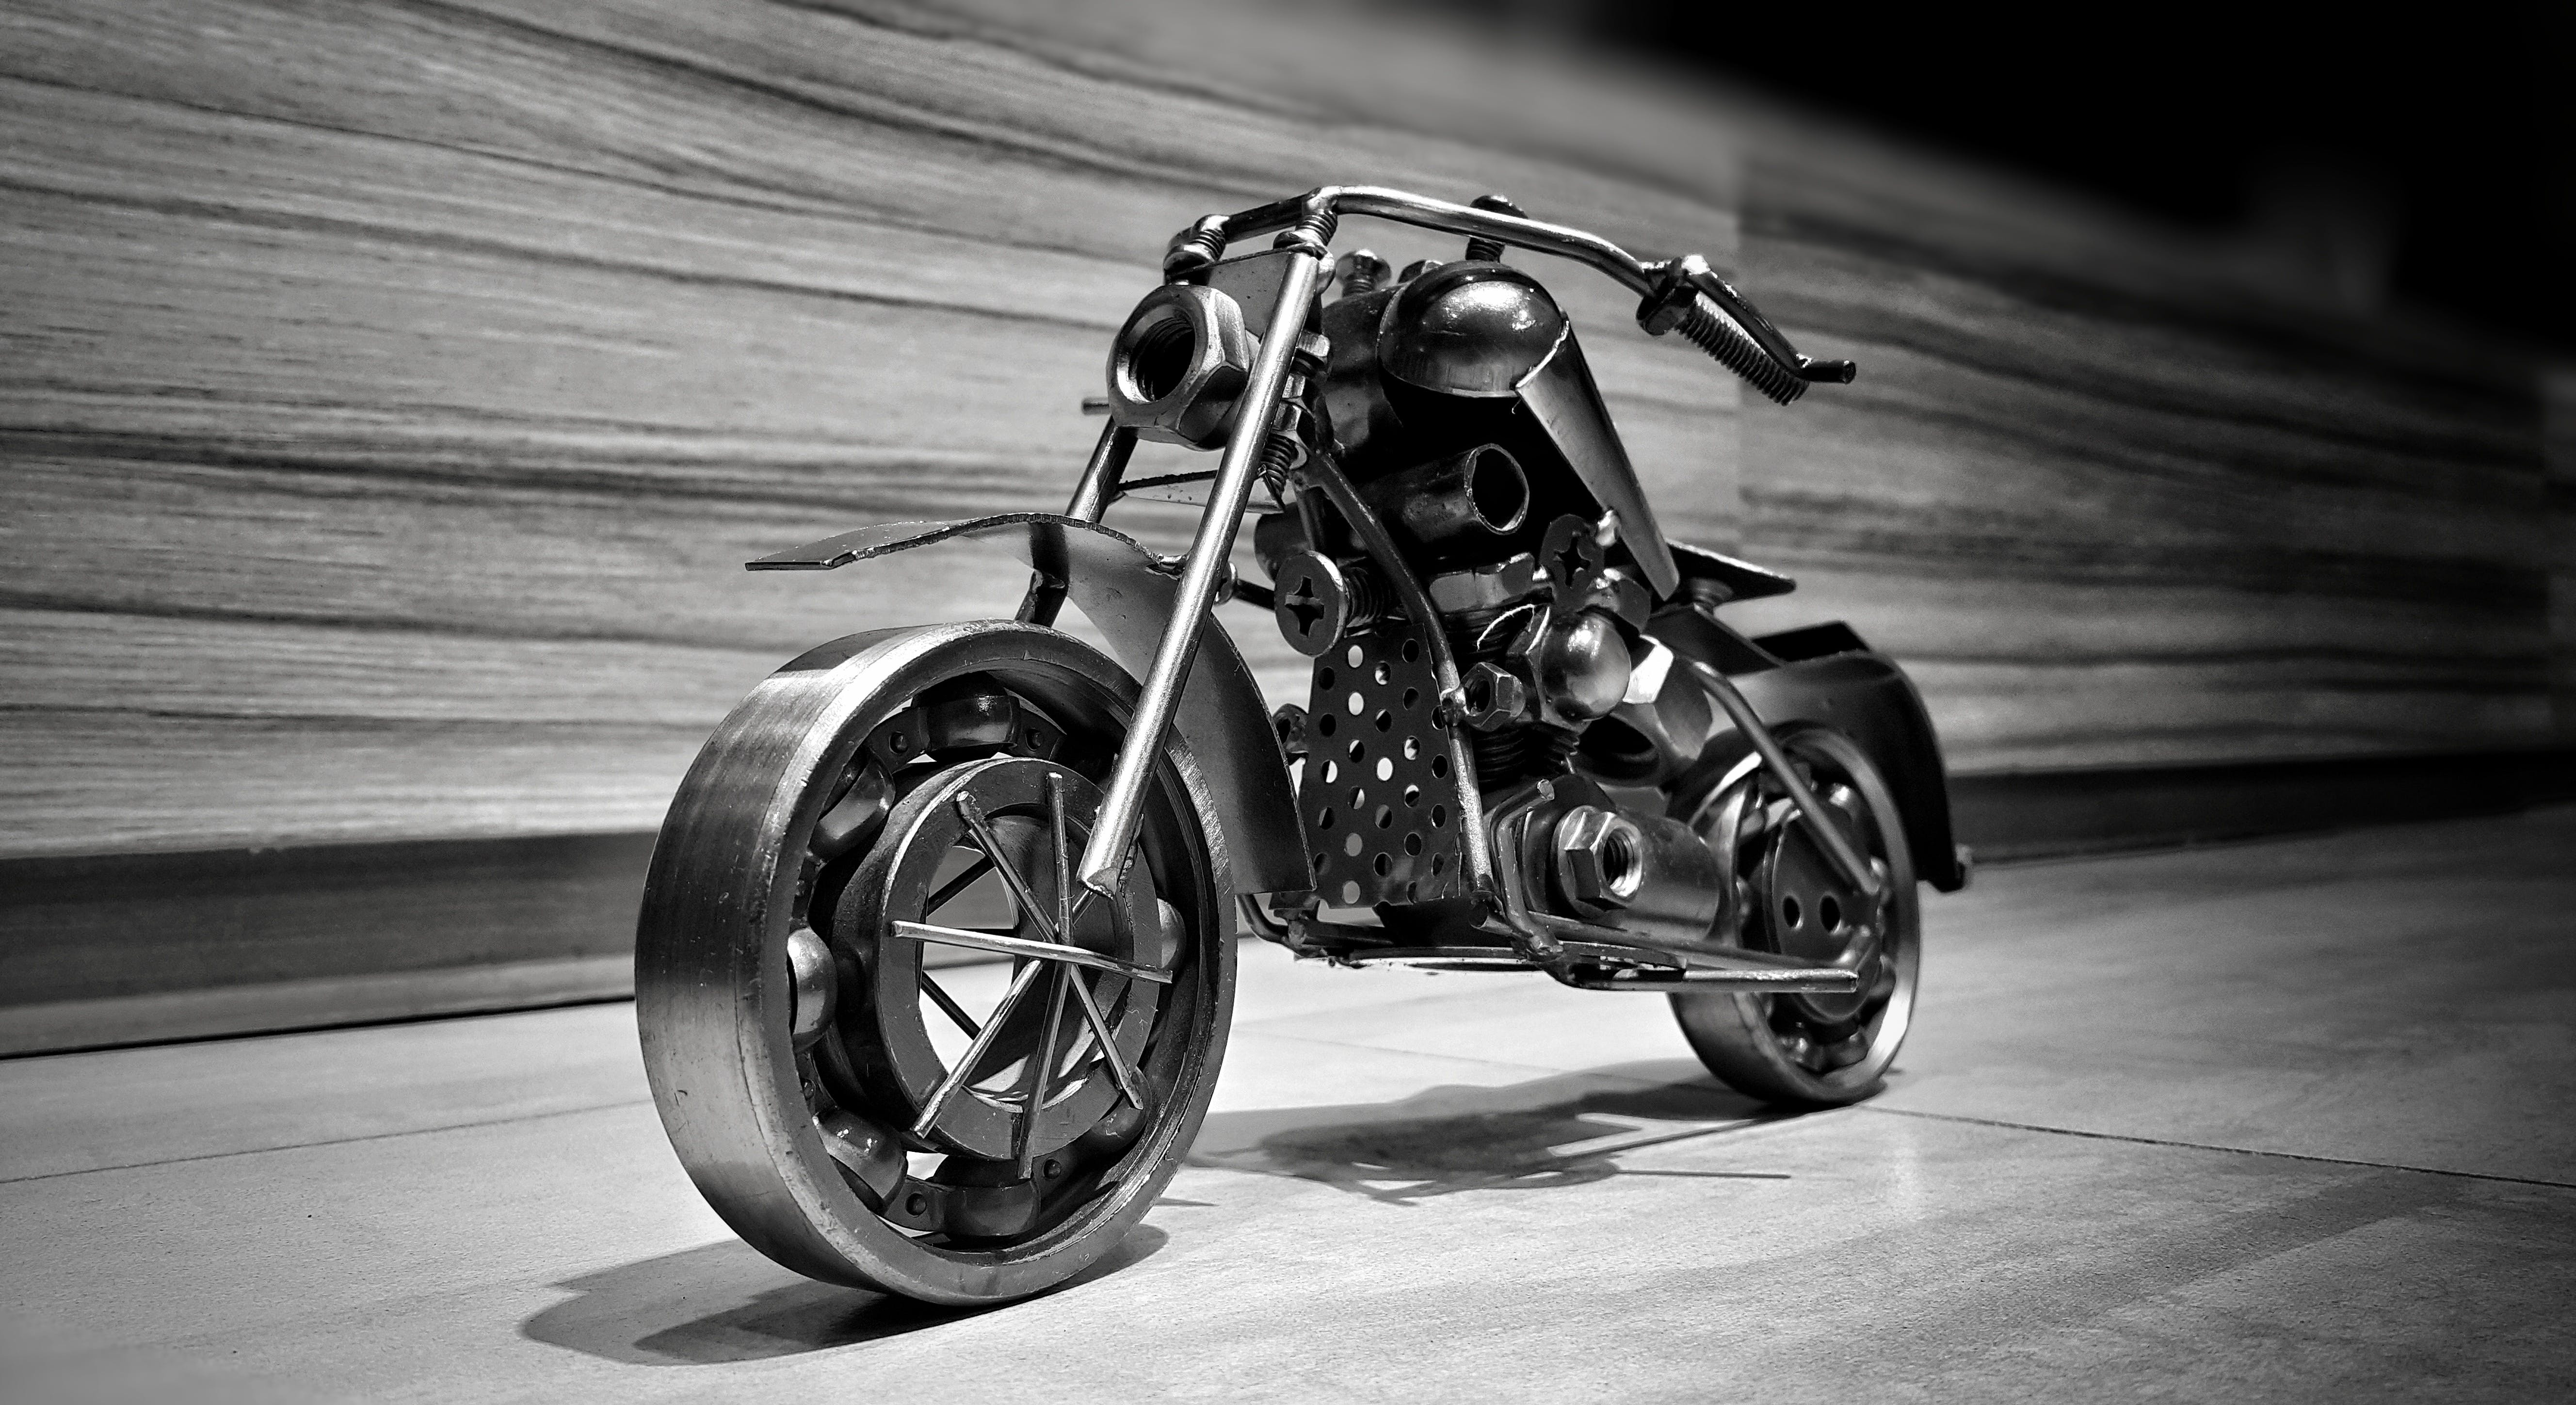 Free stock photo of bike, black and white, bolts, decoration